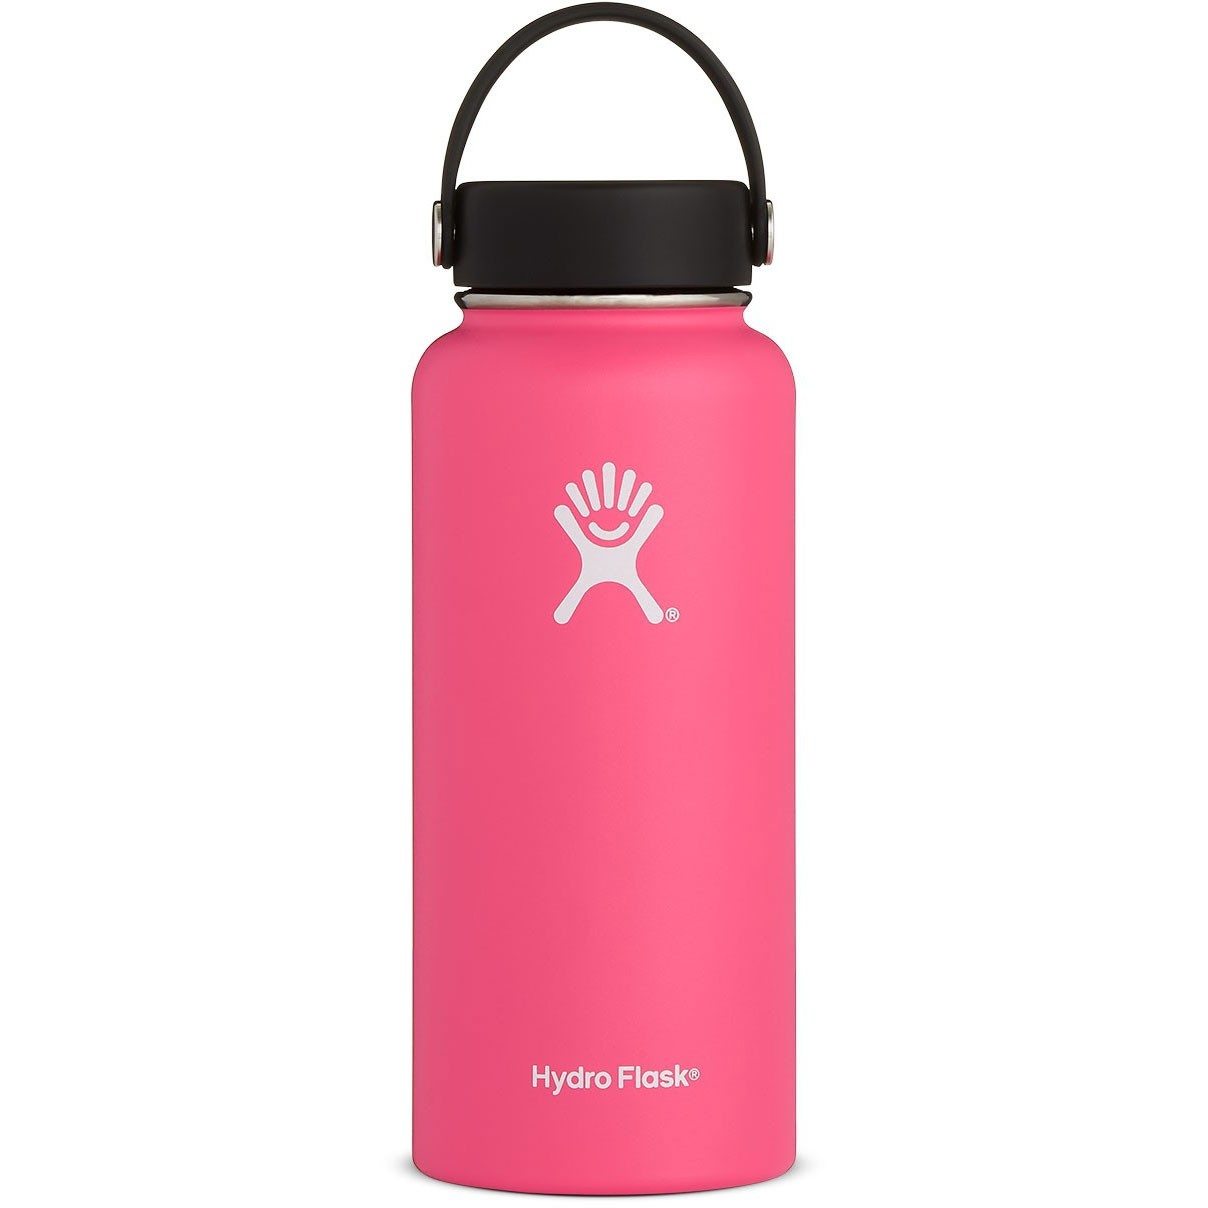 Hydro Flask 32oz Wide Mouth Insulated Bottle Outside Co Uk